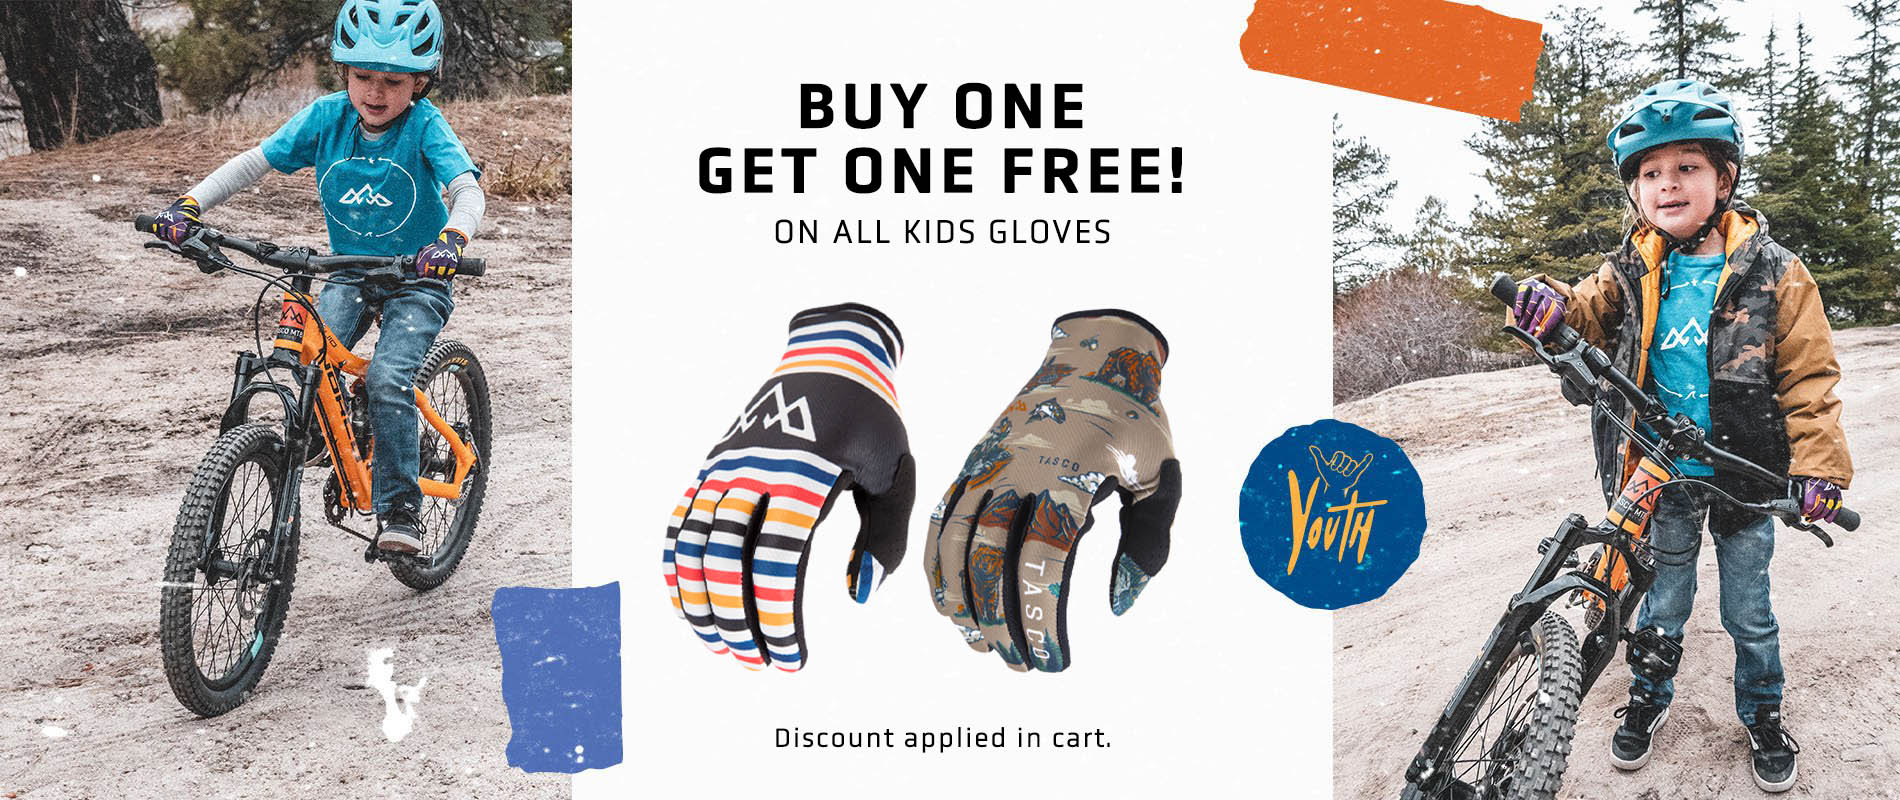 Kids Gloves - Buy One Get One Free!